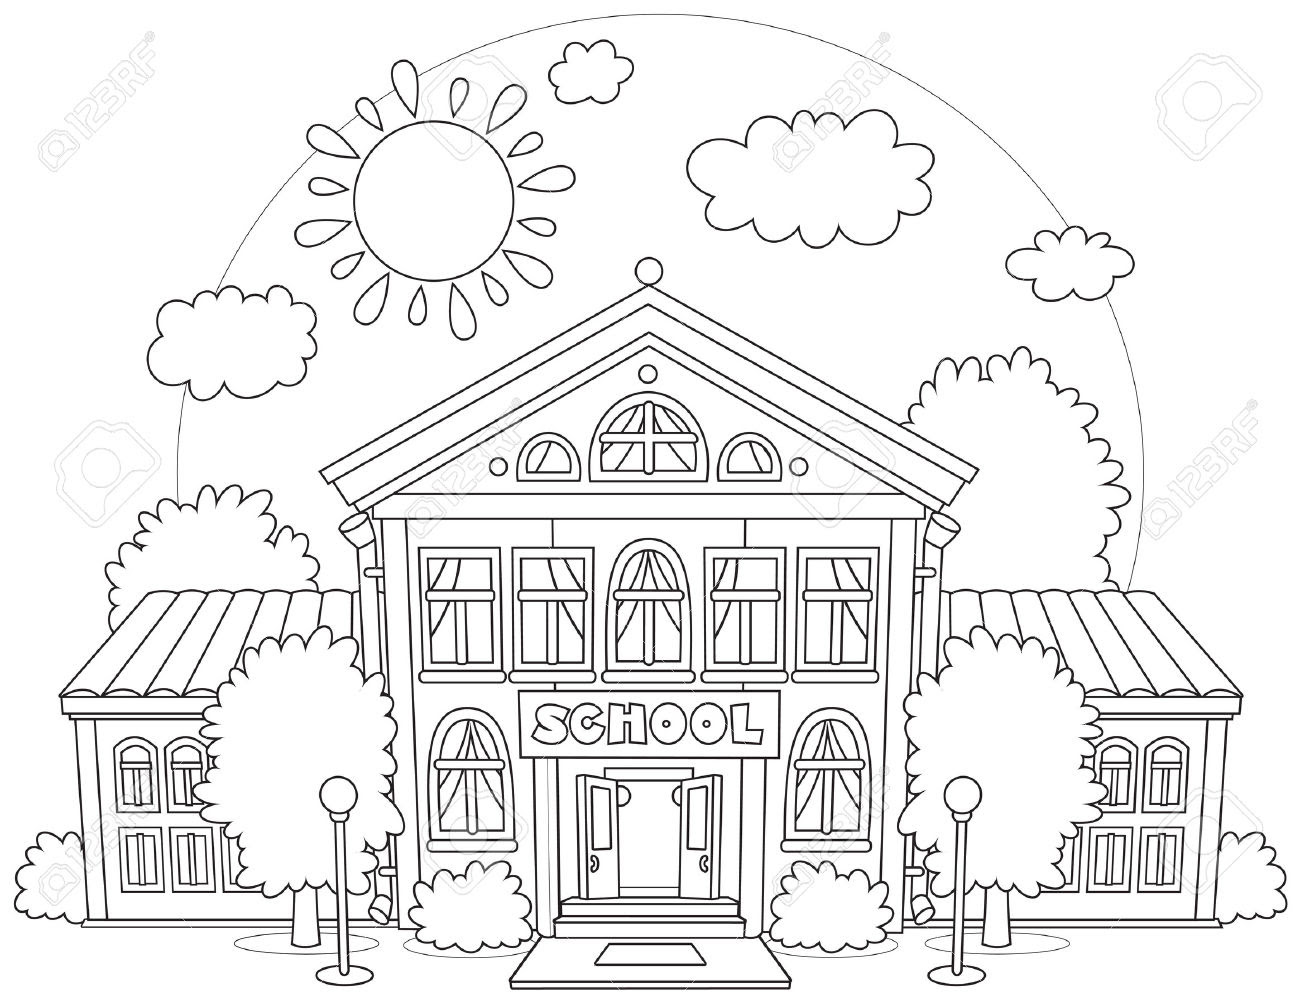 440 Coloring Pages For Primary School Pictures